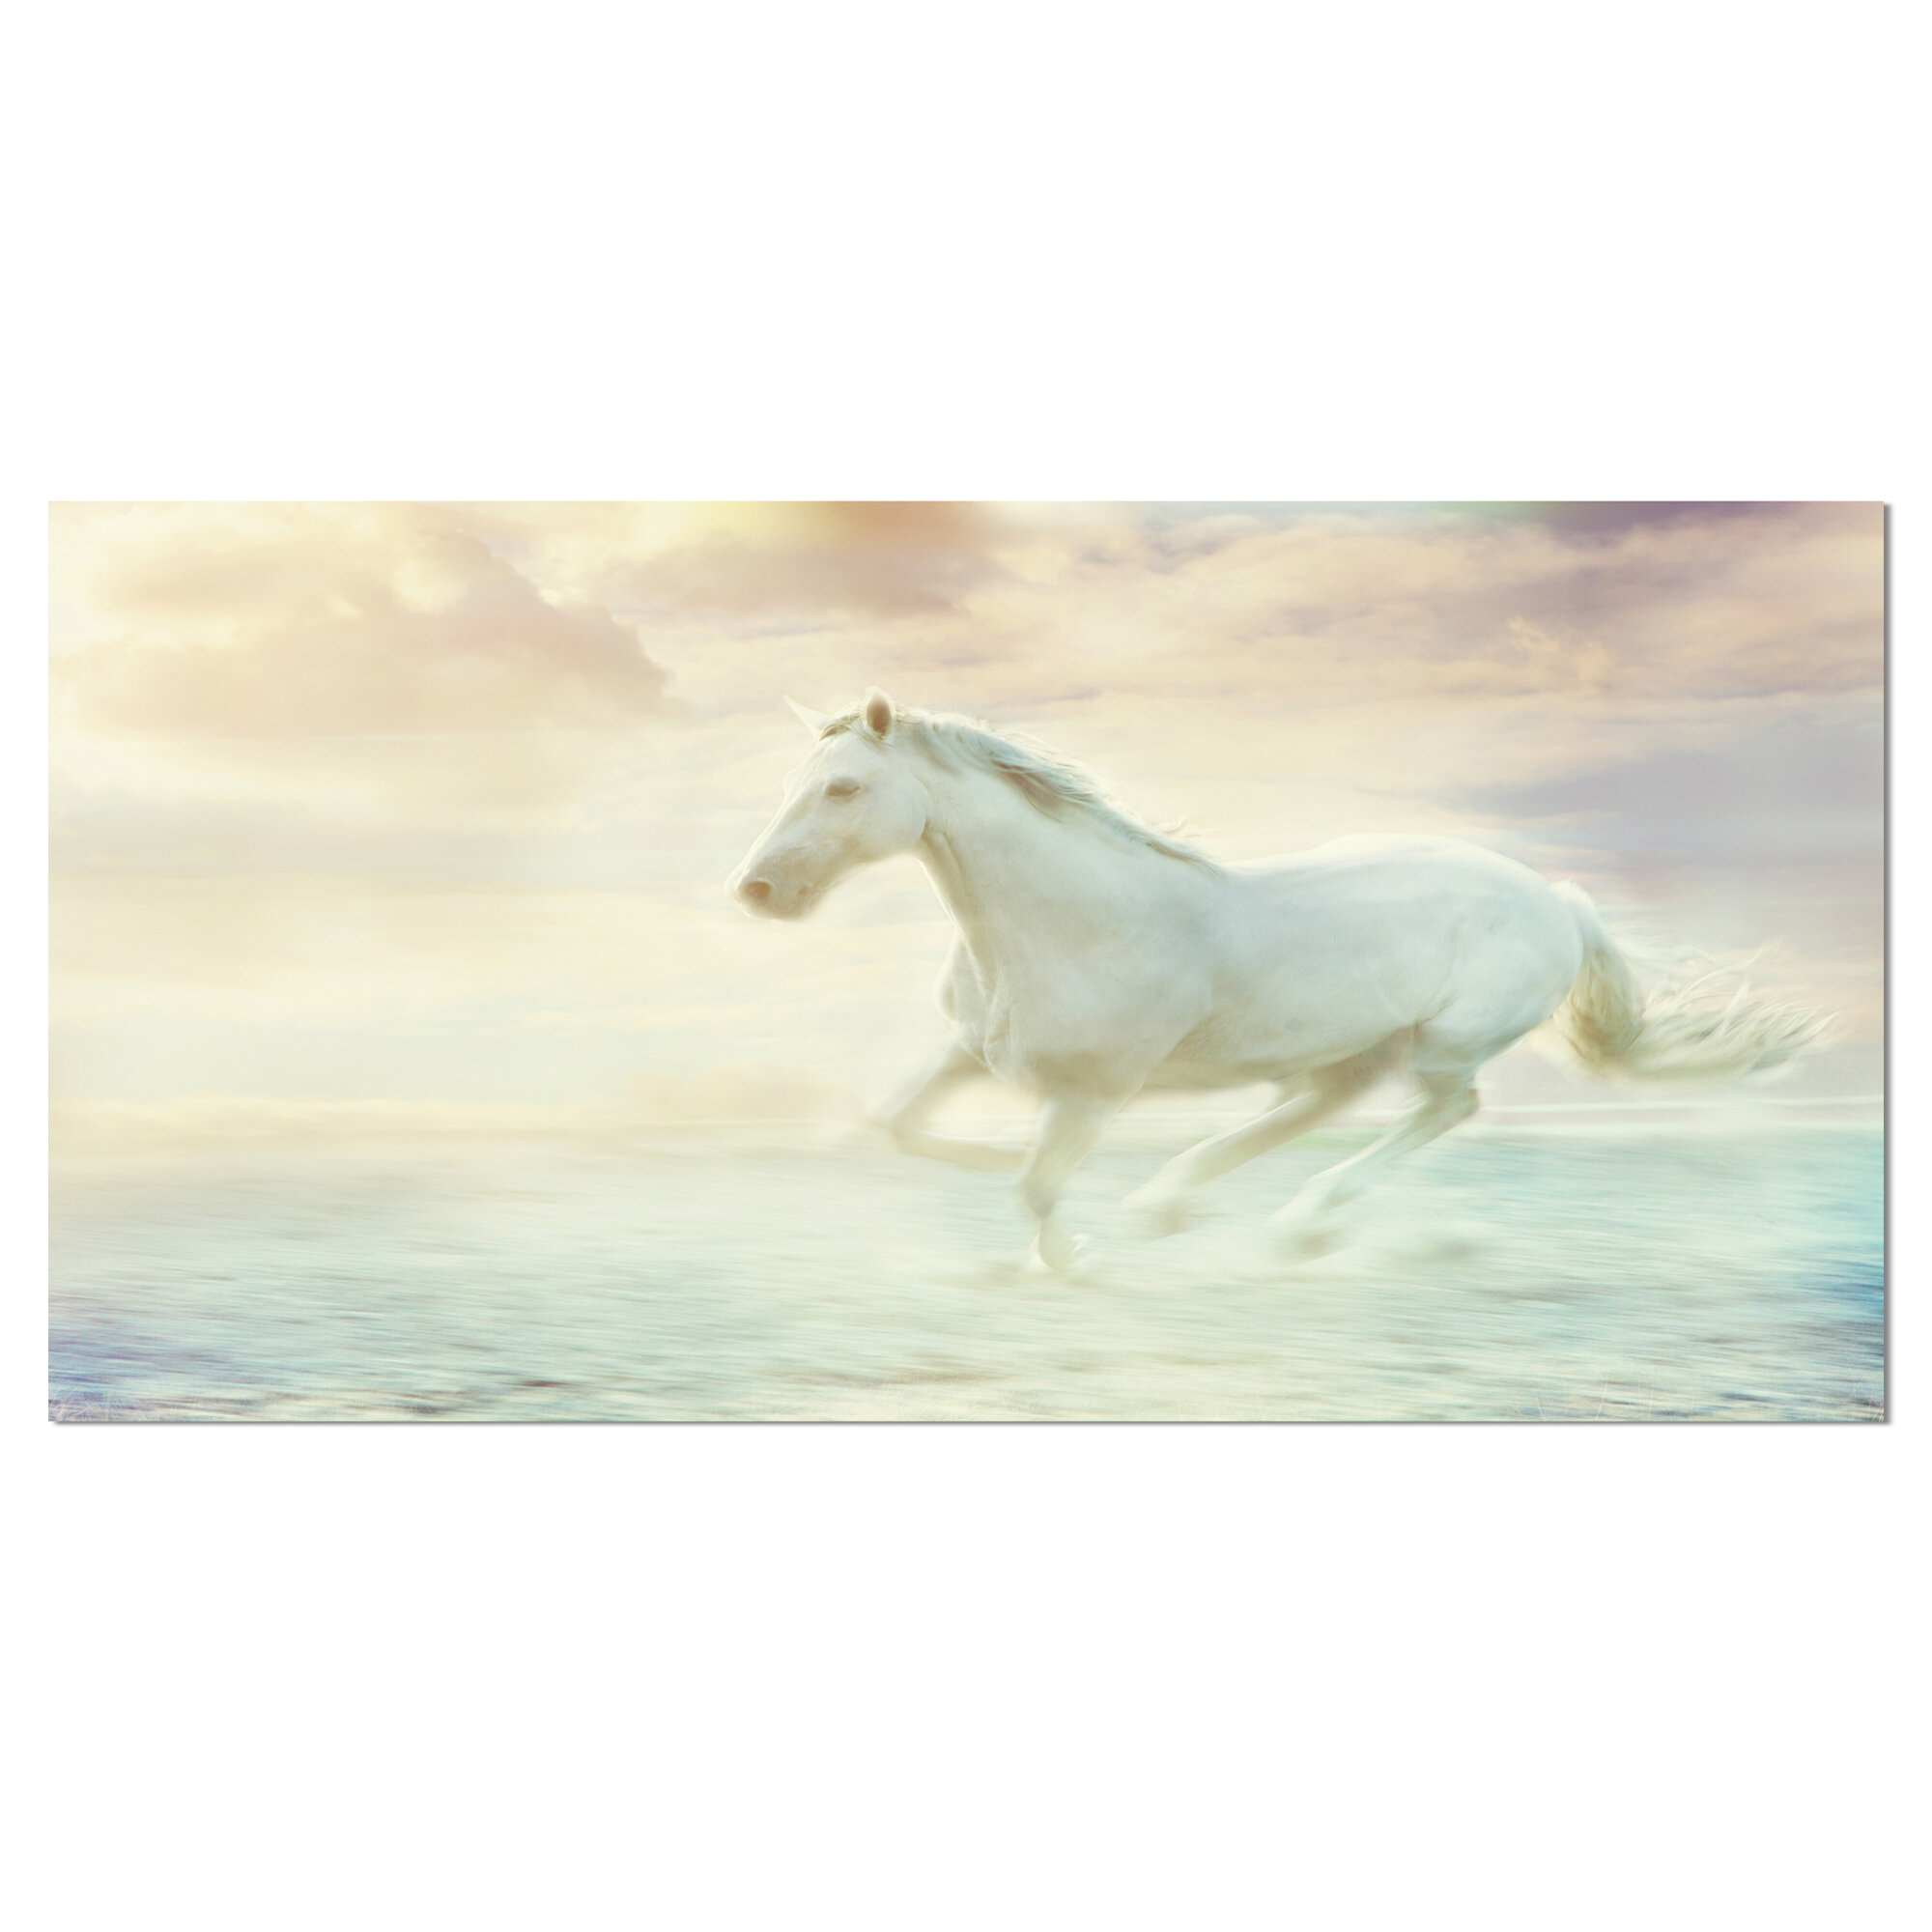 Ebern Designs Fantasy White Horse Graphic Art On Wrapped Canvas Reviews